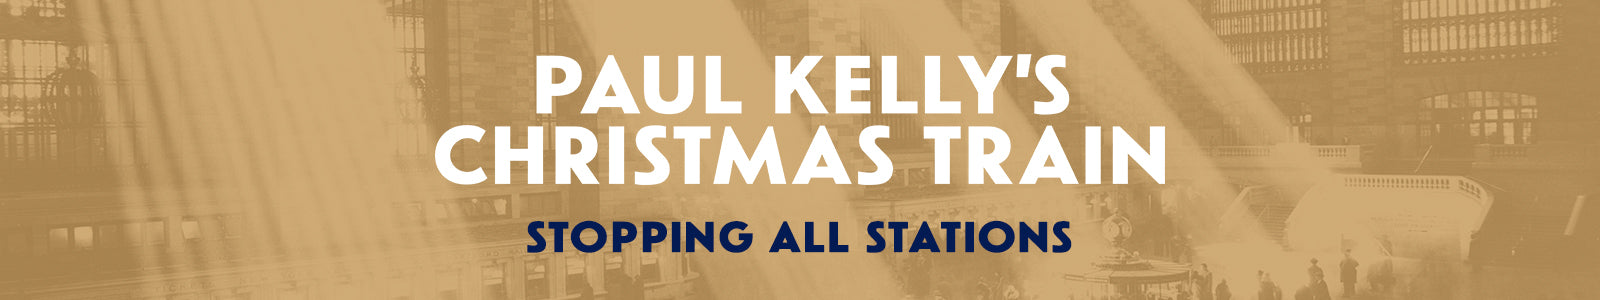 Paul Kelly's Christmas Train Category Banner